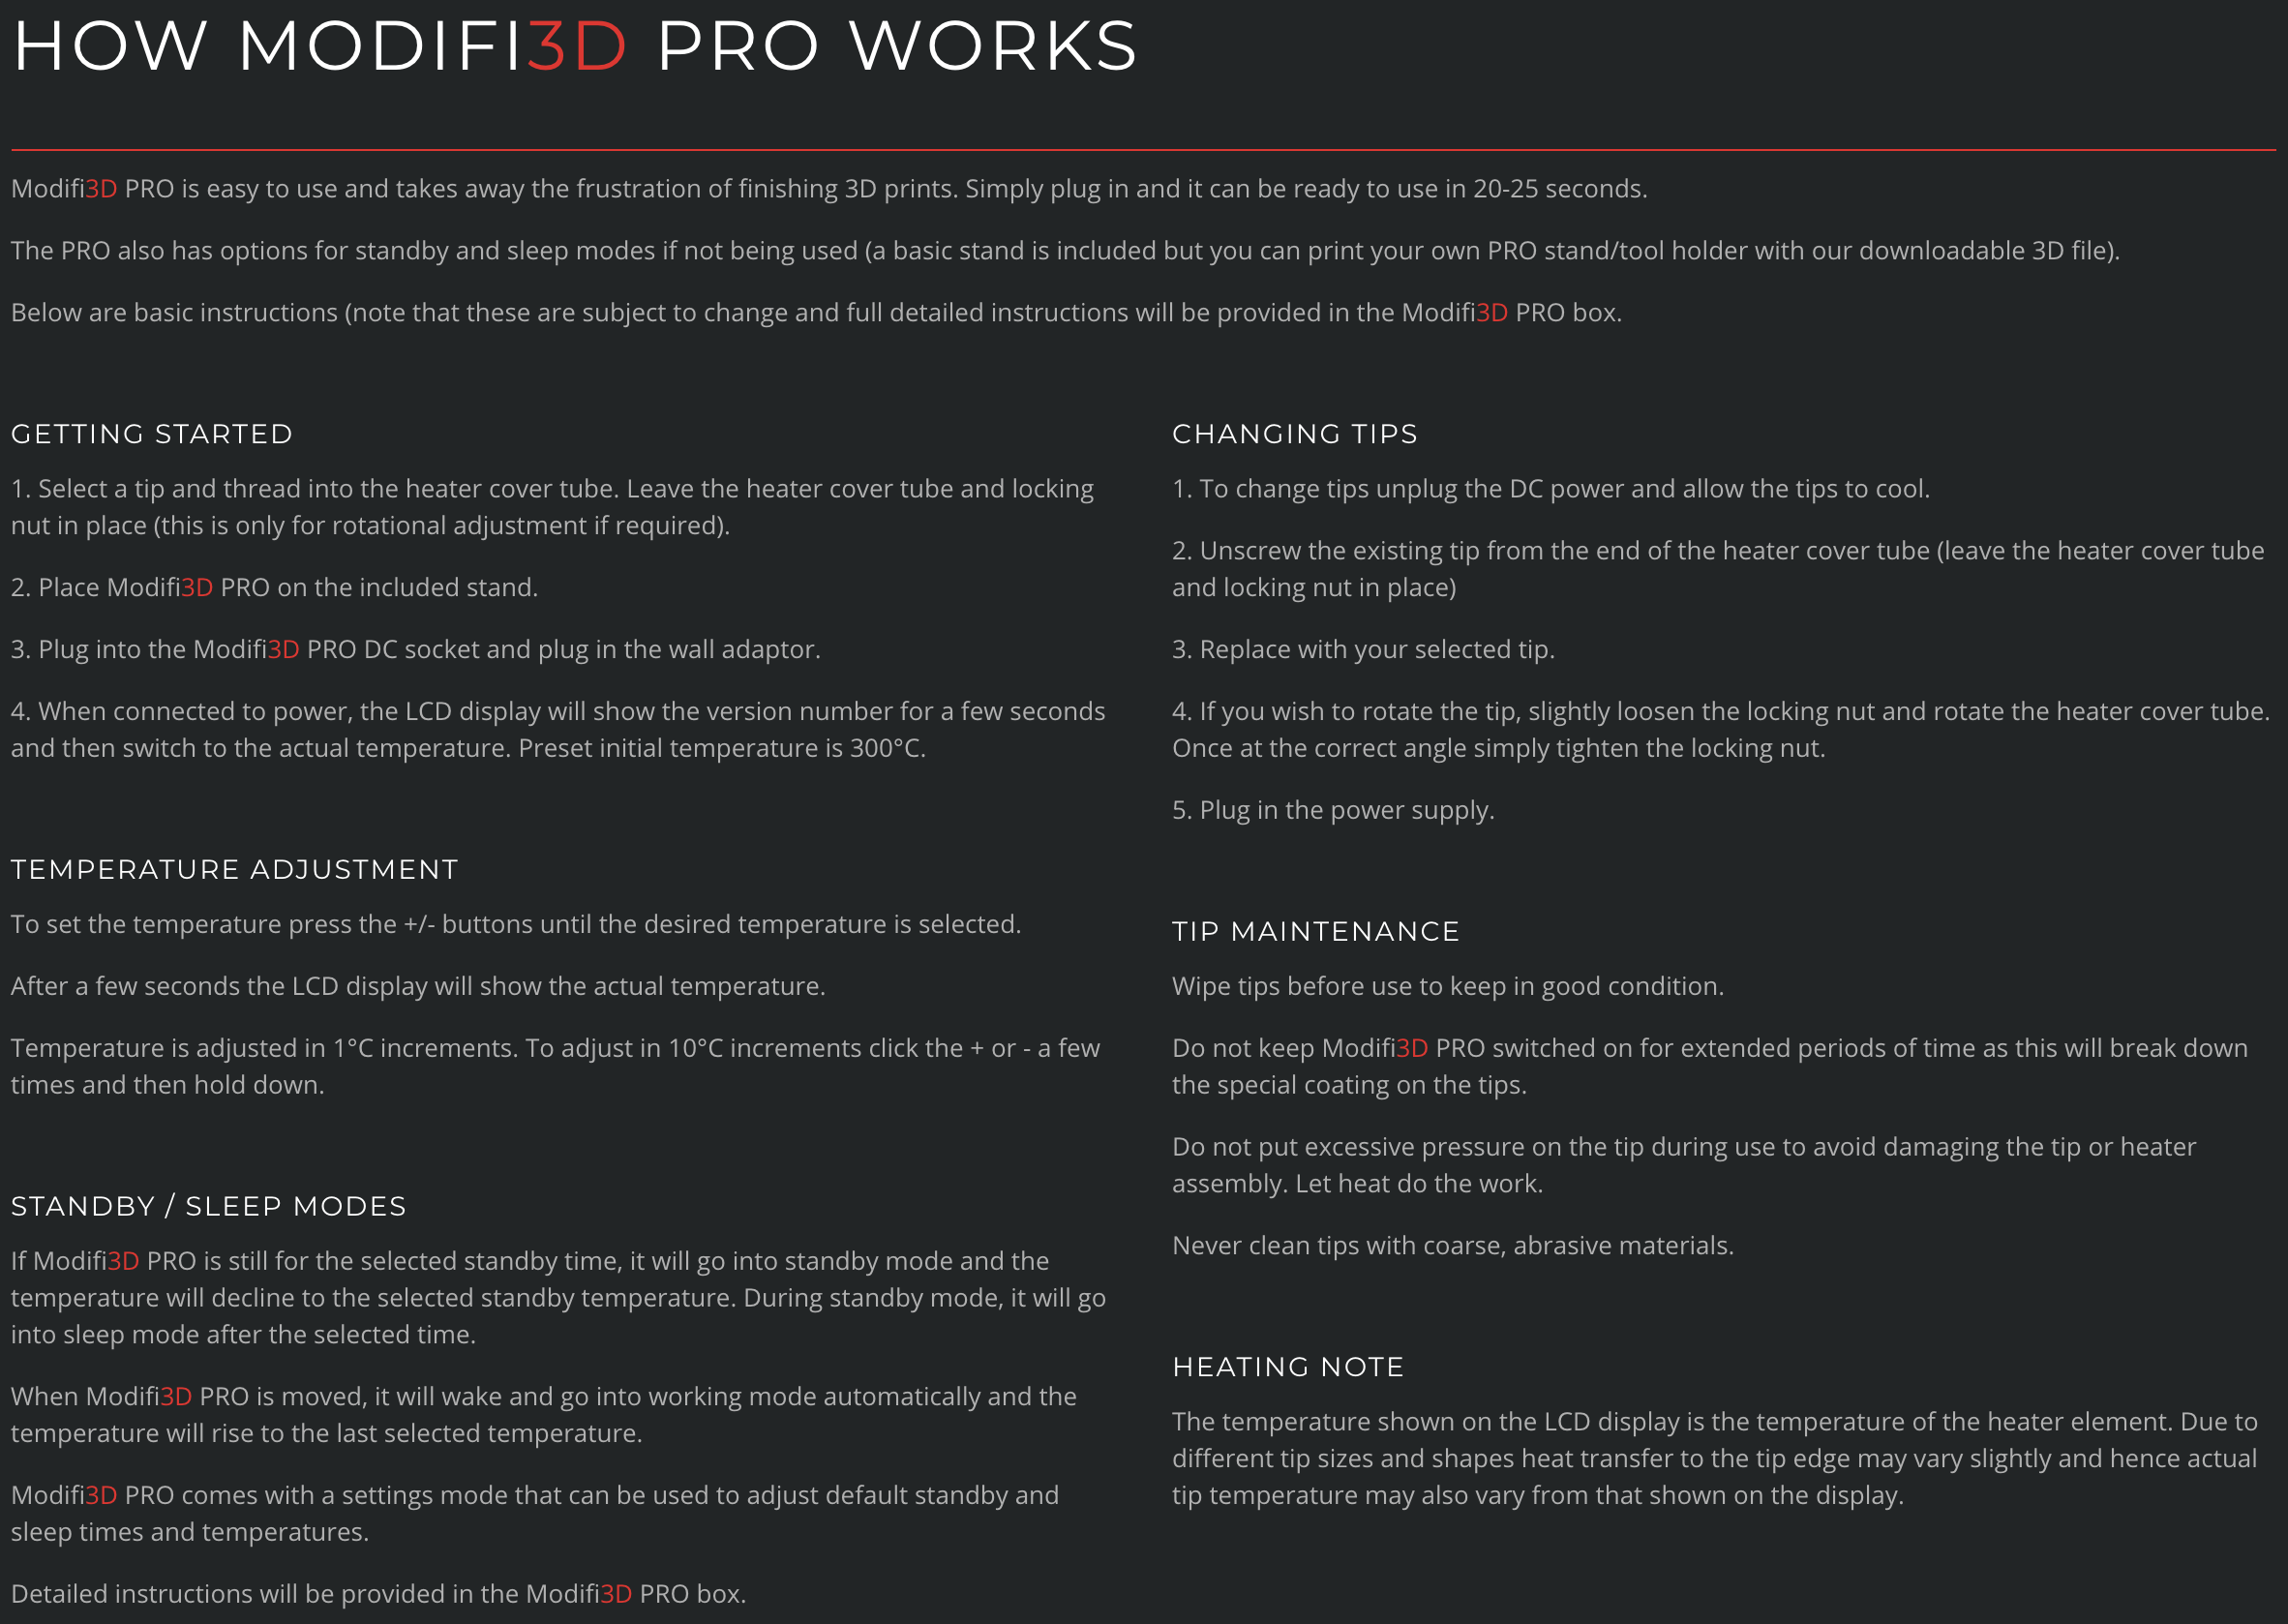 MODIFI3D Guide